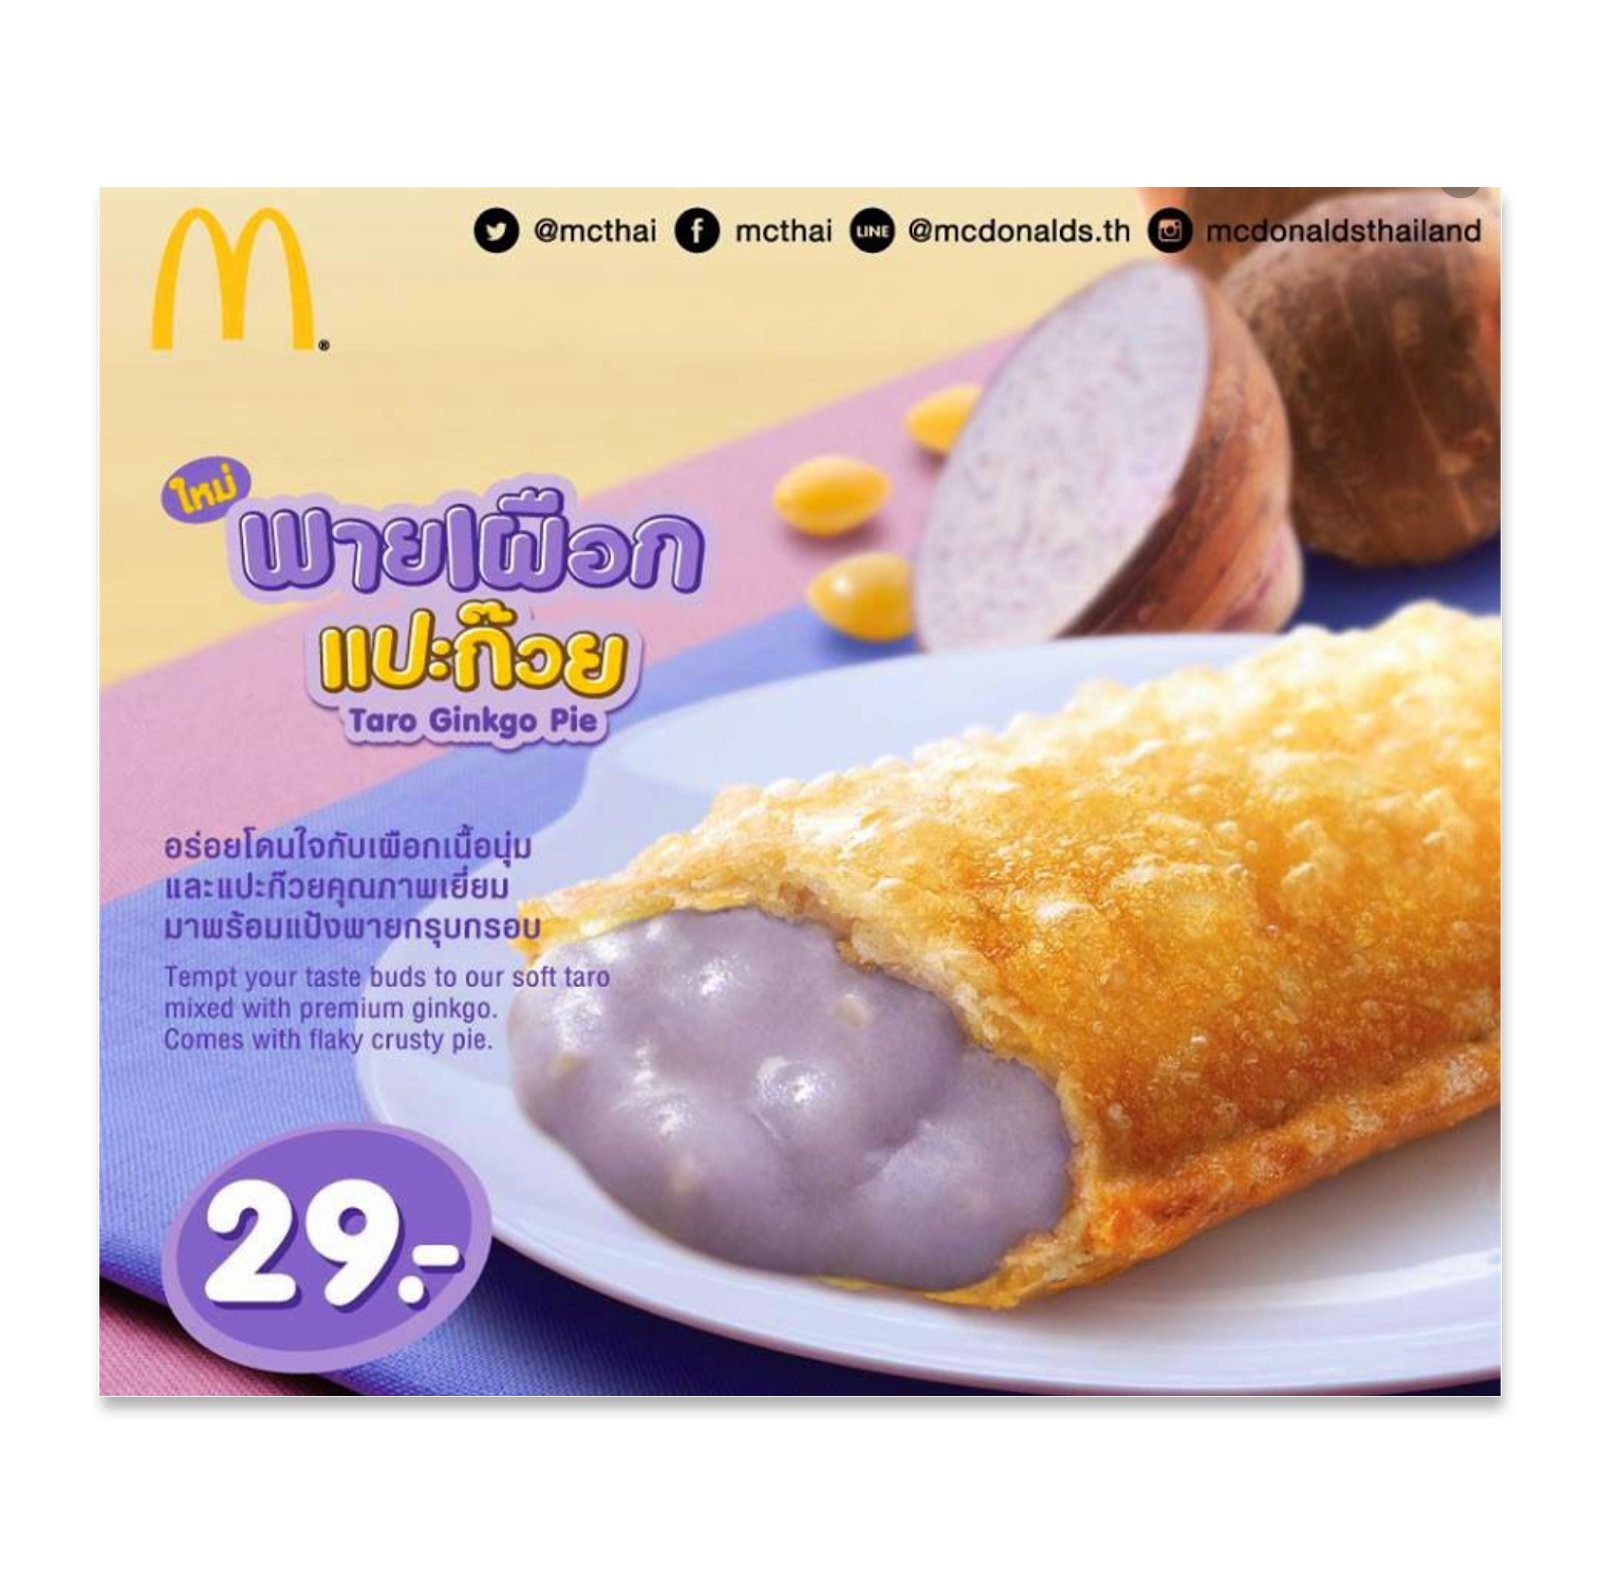 This McDonald's ad shows the Thai offering of taro. The image feature soft taro encased in a long, fried covering.